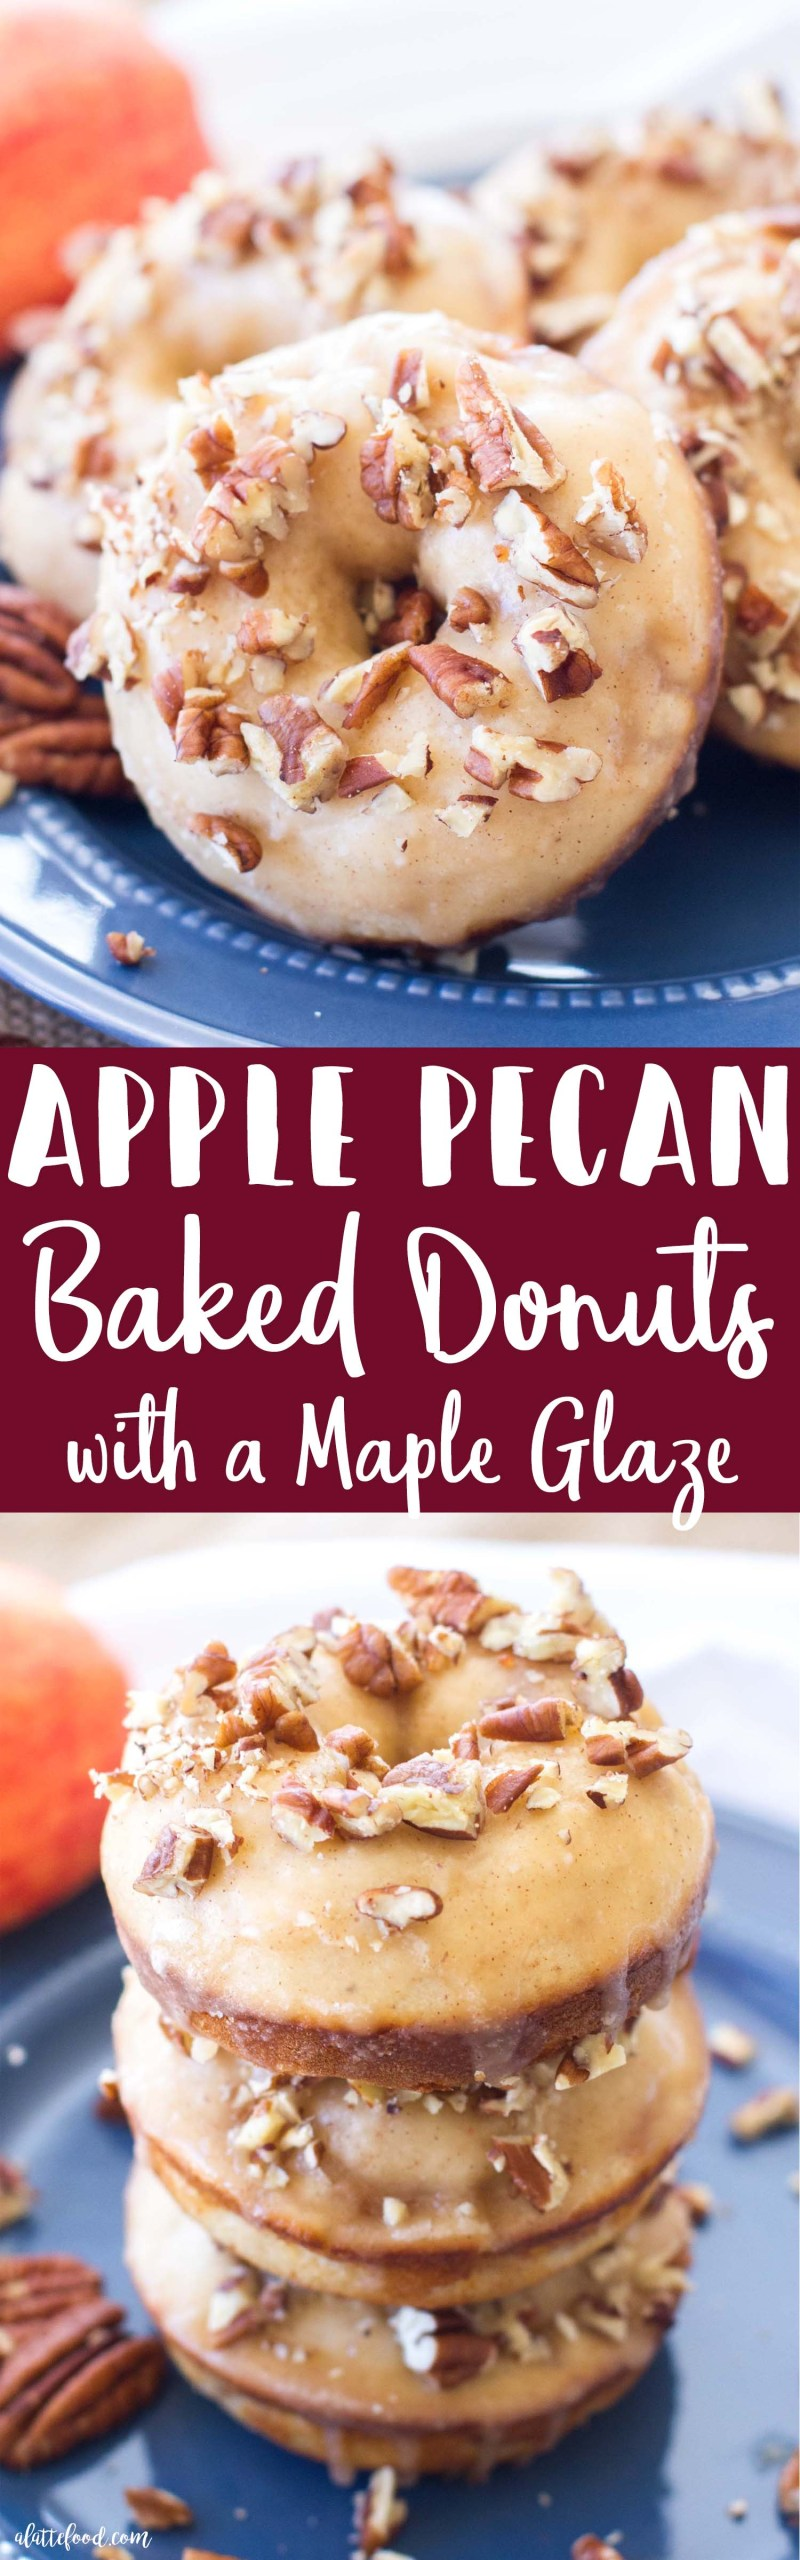 These simple baked apple donuts are filled with sweet apples andcinnamon, and topped with a maple glaze and chopped pecans! These homemade donuts taste like warm apple pie with a sweet maple glaze!